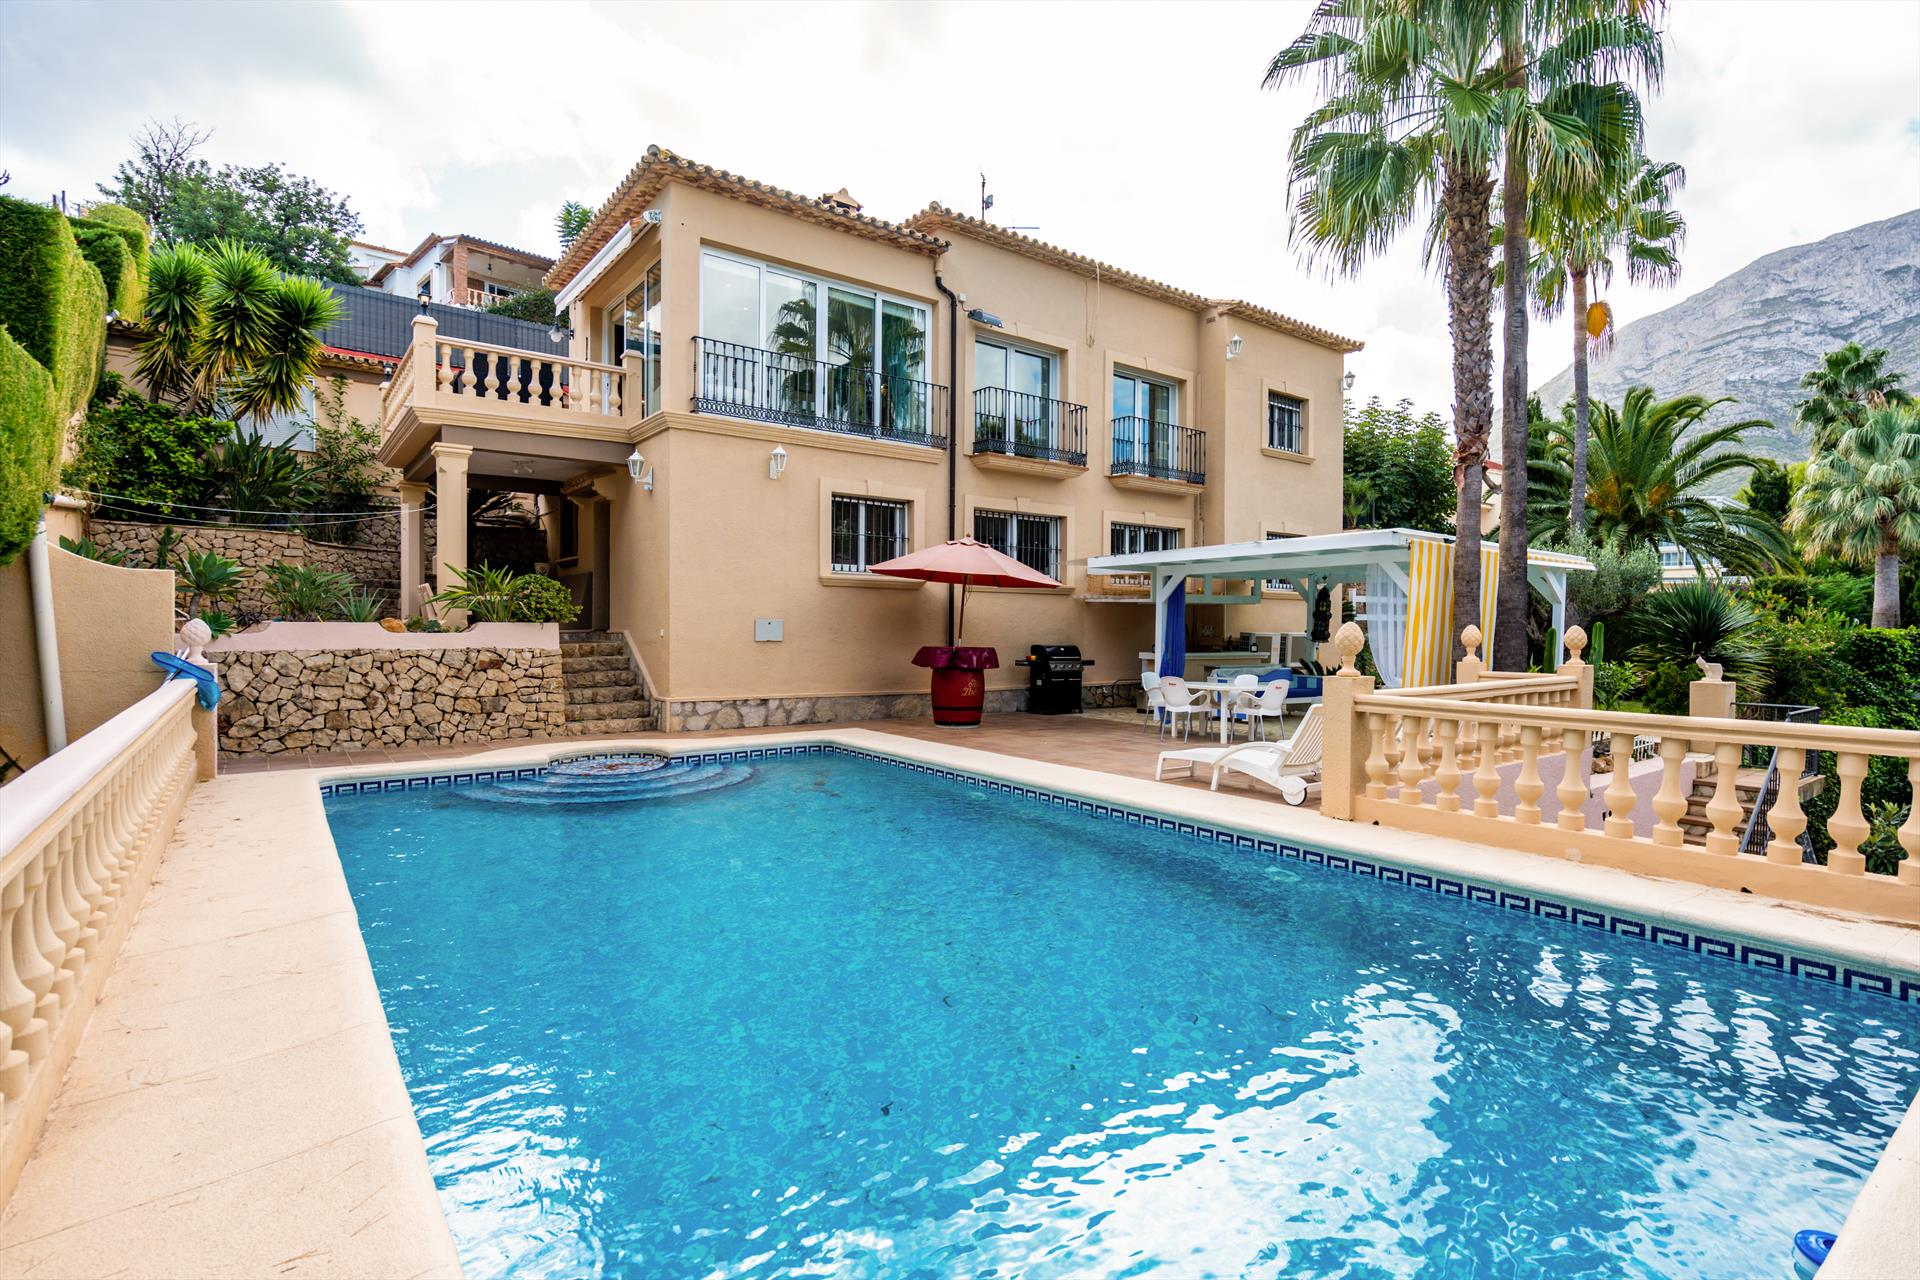 Flavie 8 pax, Large and classic villa in Denia, on the Costa Blanca, Spain  with private pool for 8 persons.....